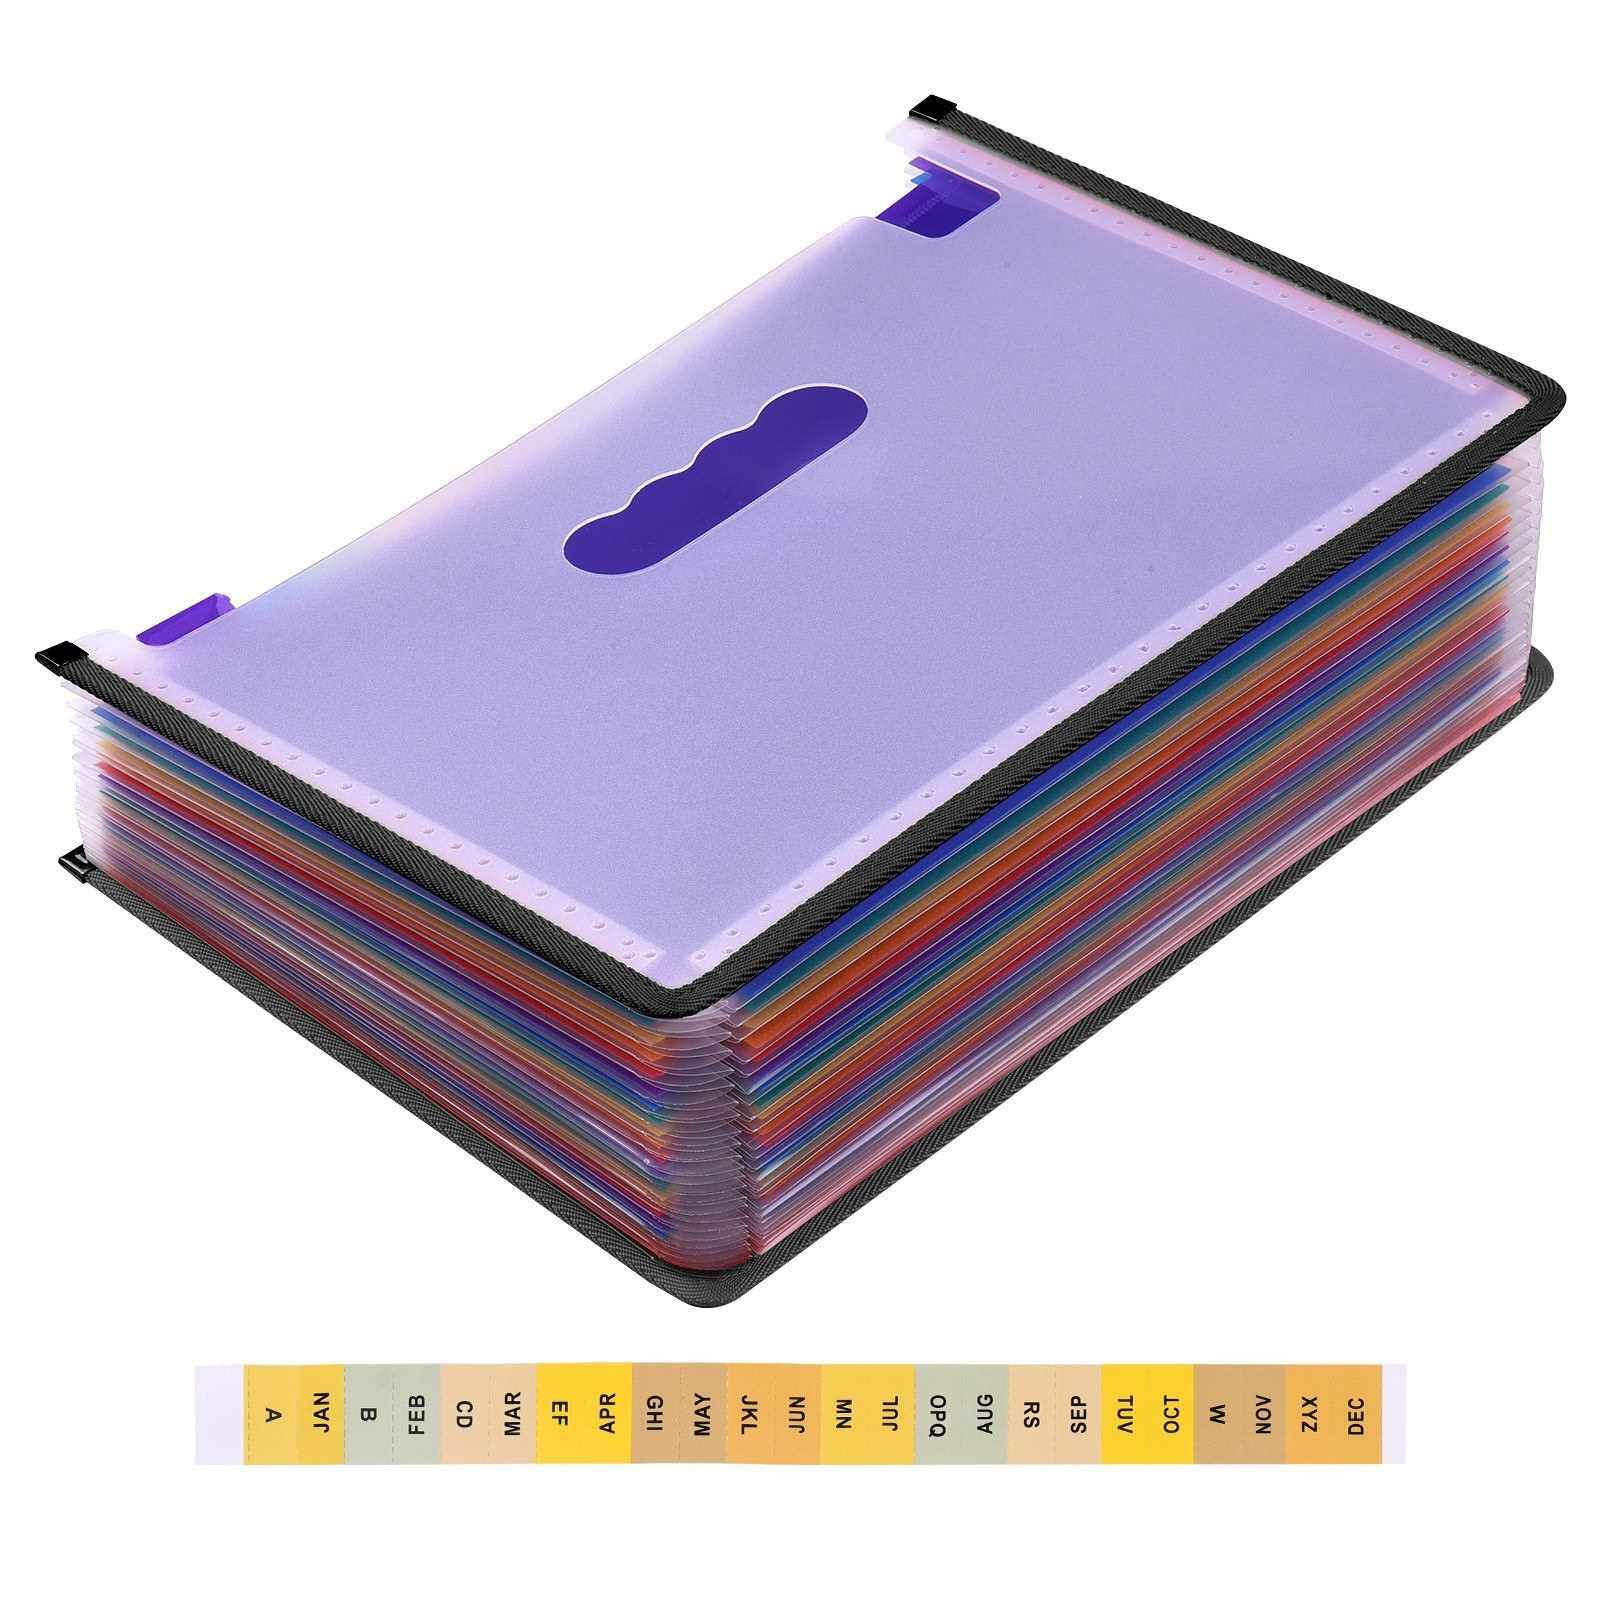 Best Selling 24 Pockets Expanding File Folder Accordian File Organizer A4 Letter Size Document Organizer Rainbow Color for Home Office School (Standard)